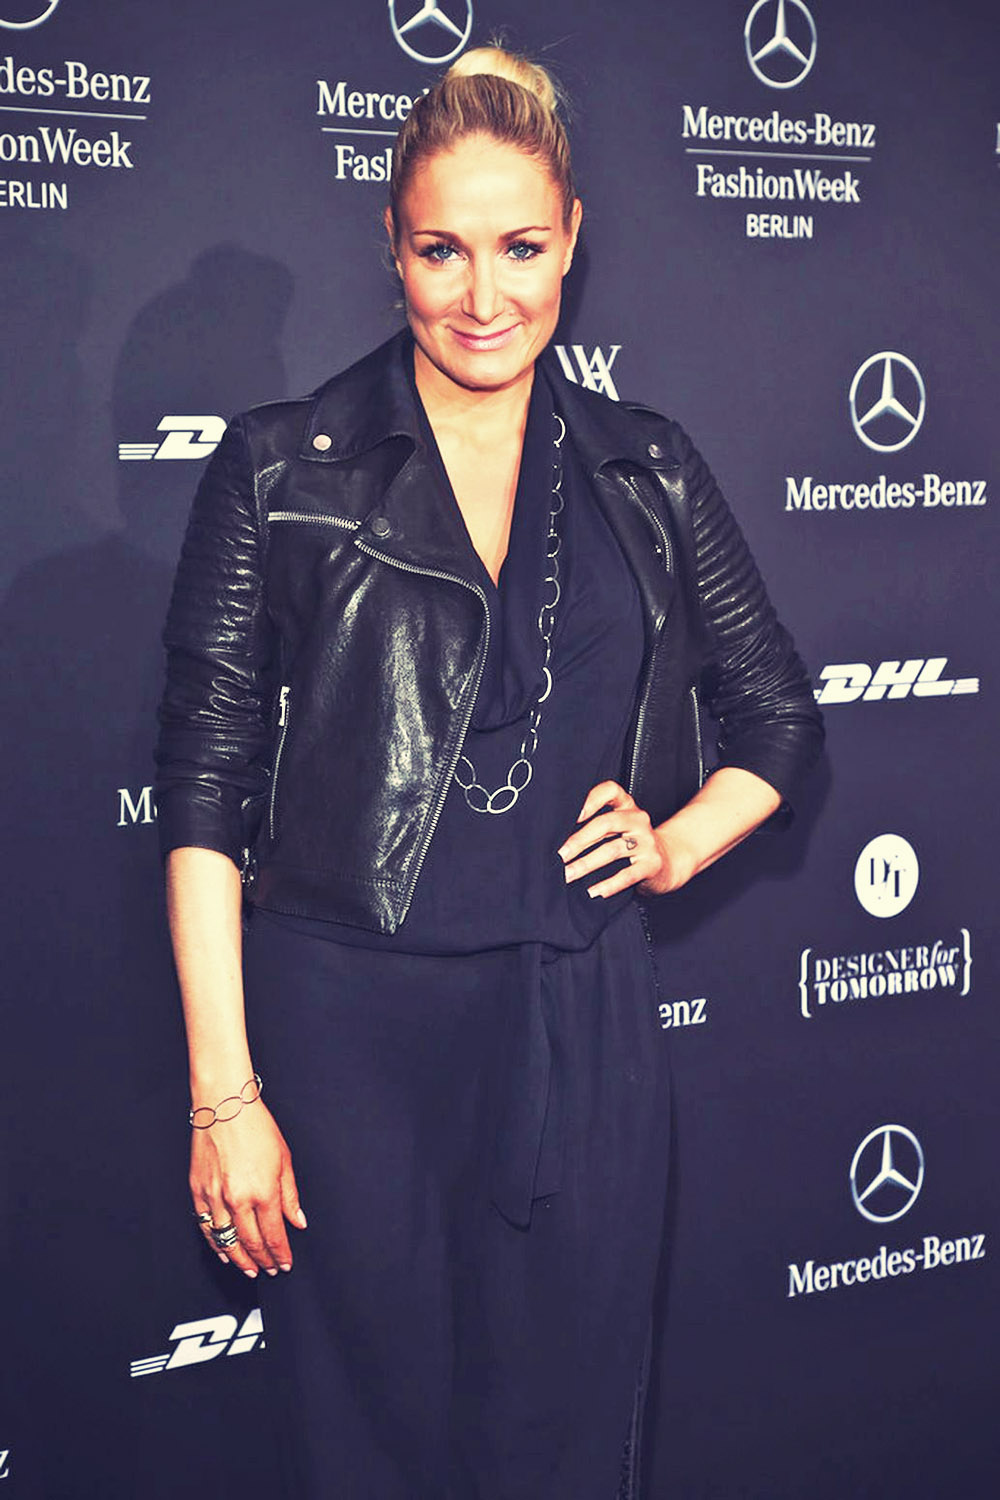 Janine Kunze attends Mercedes-Benz Fashion Week Berlin 2013